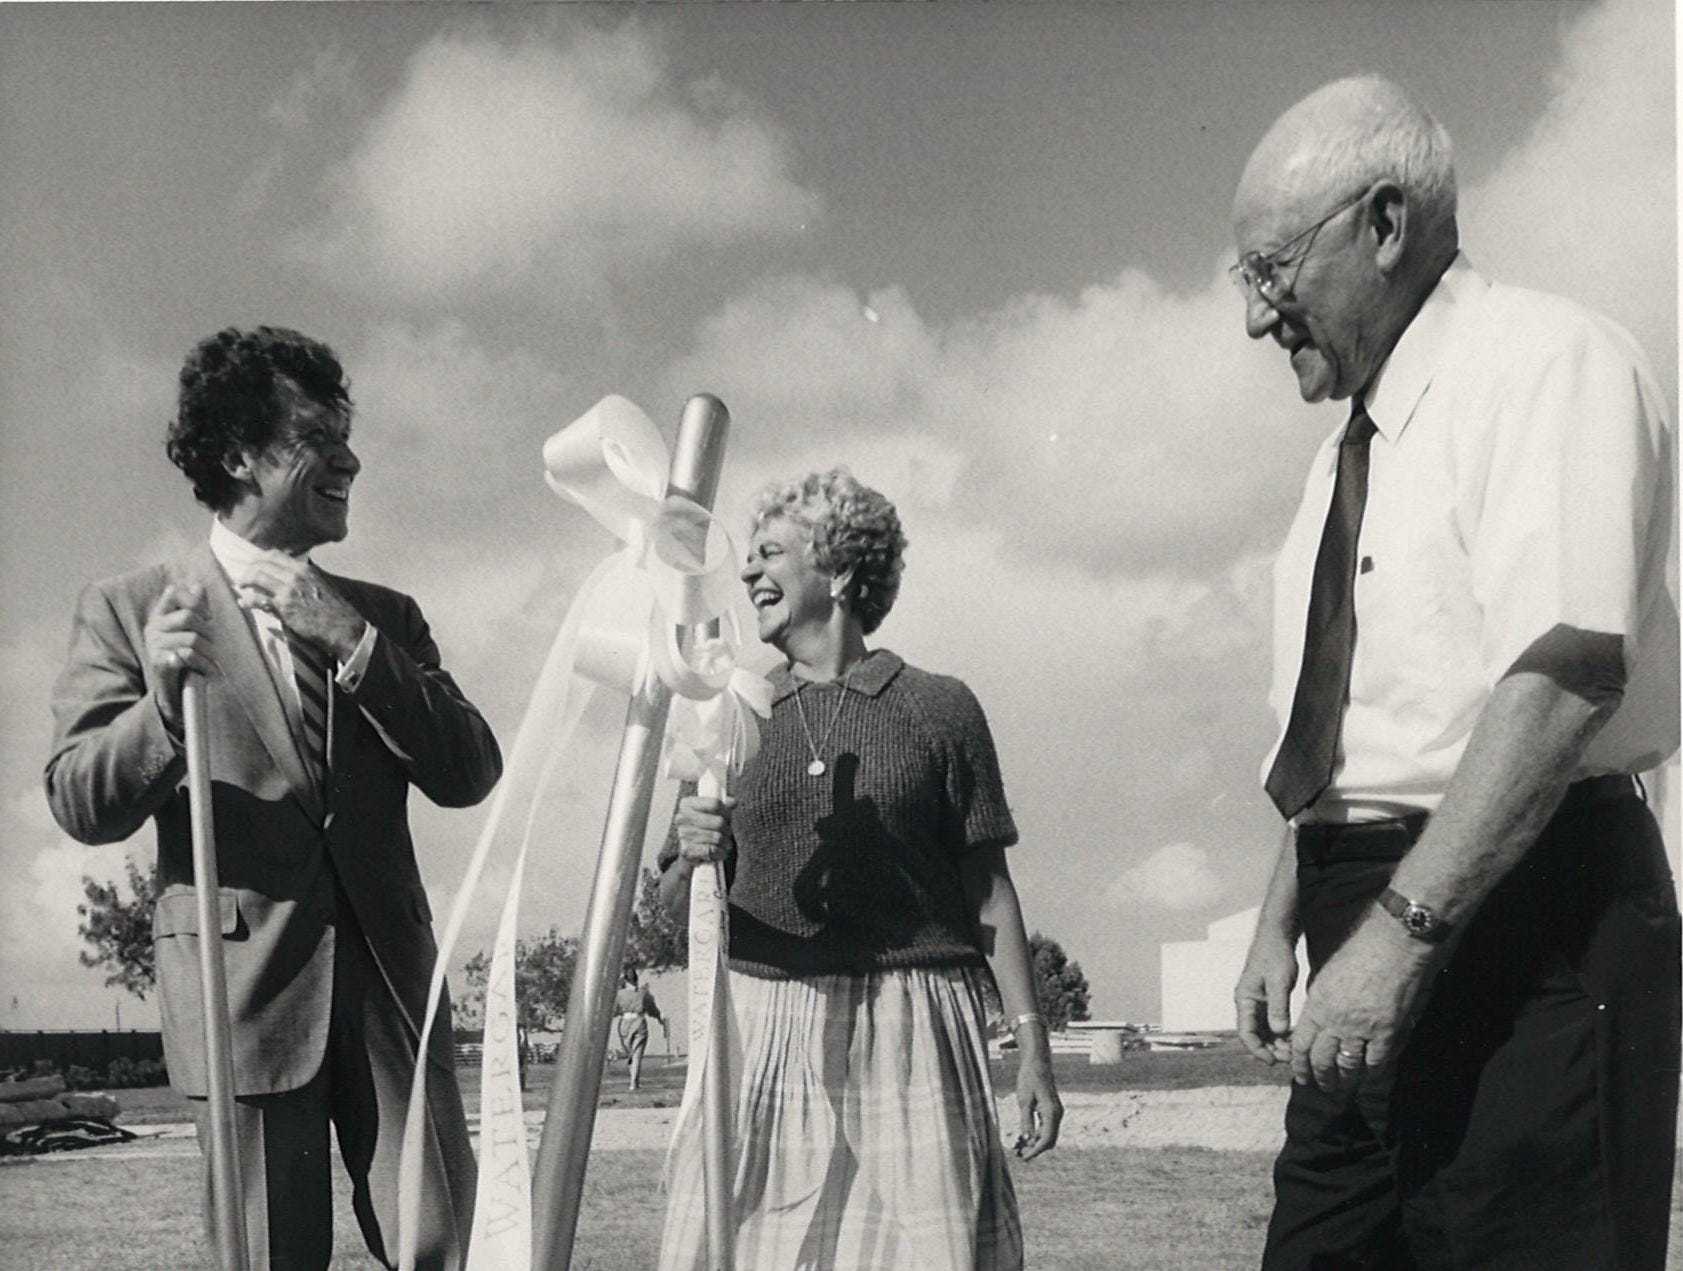 Jim Peterson, (left to right), president of the Foundation of Sciences and Arts, Corpus Christi Mayor Betty Turner and former Mayor Luther Jones chat after the groundbreaking ceremony at the Corpus Christi Watergarden on July 23, 1987.